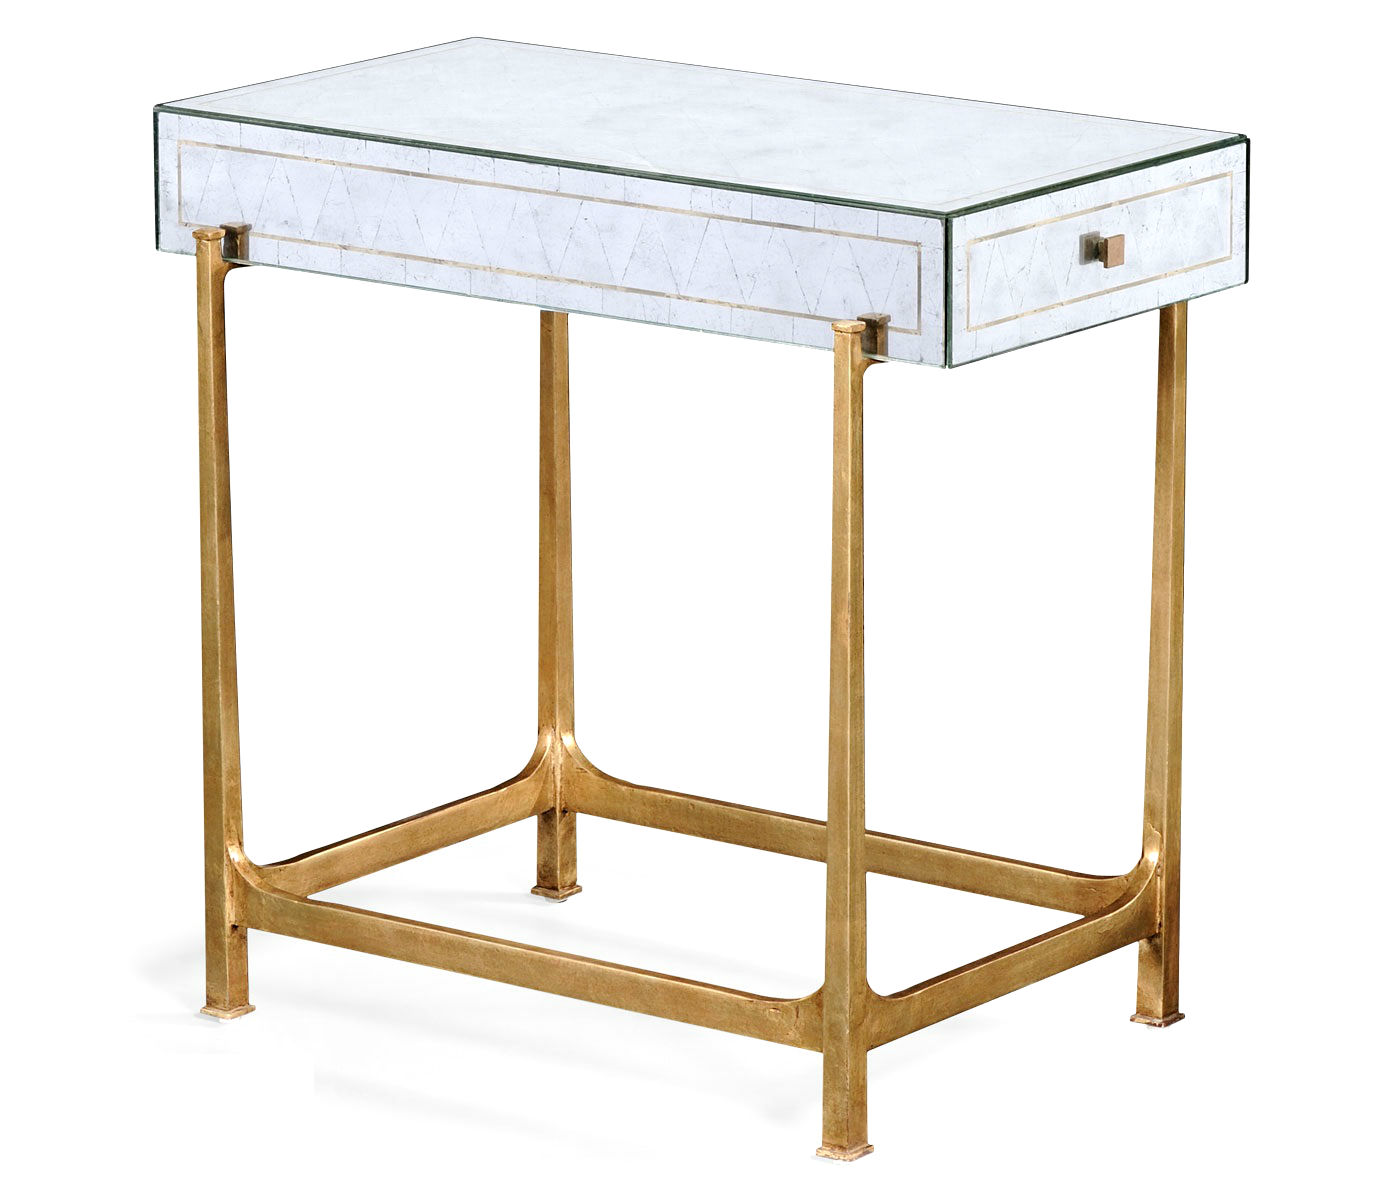 tables design ideas lovell lamp contemporary kijiji lighting red lamps darley end gold target outdoor color table tiffany yellow accent decor plus marble threshold full size